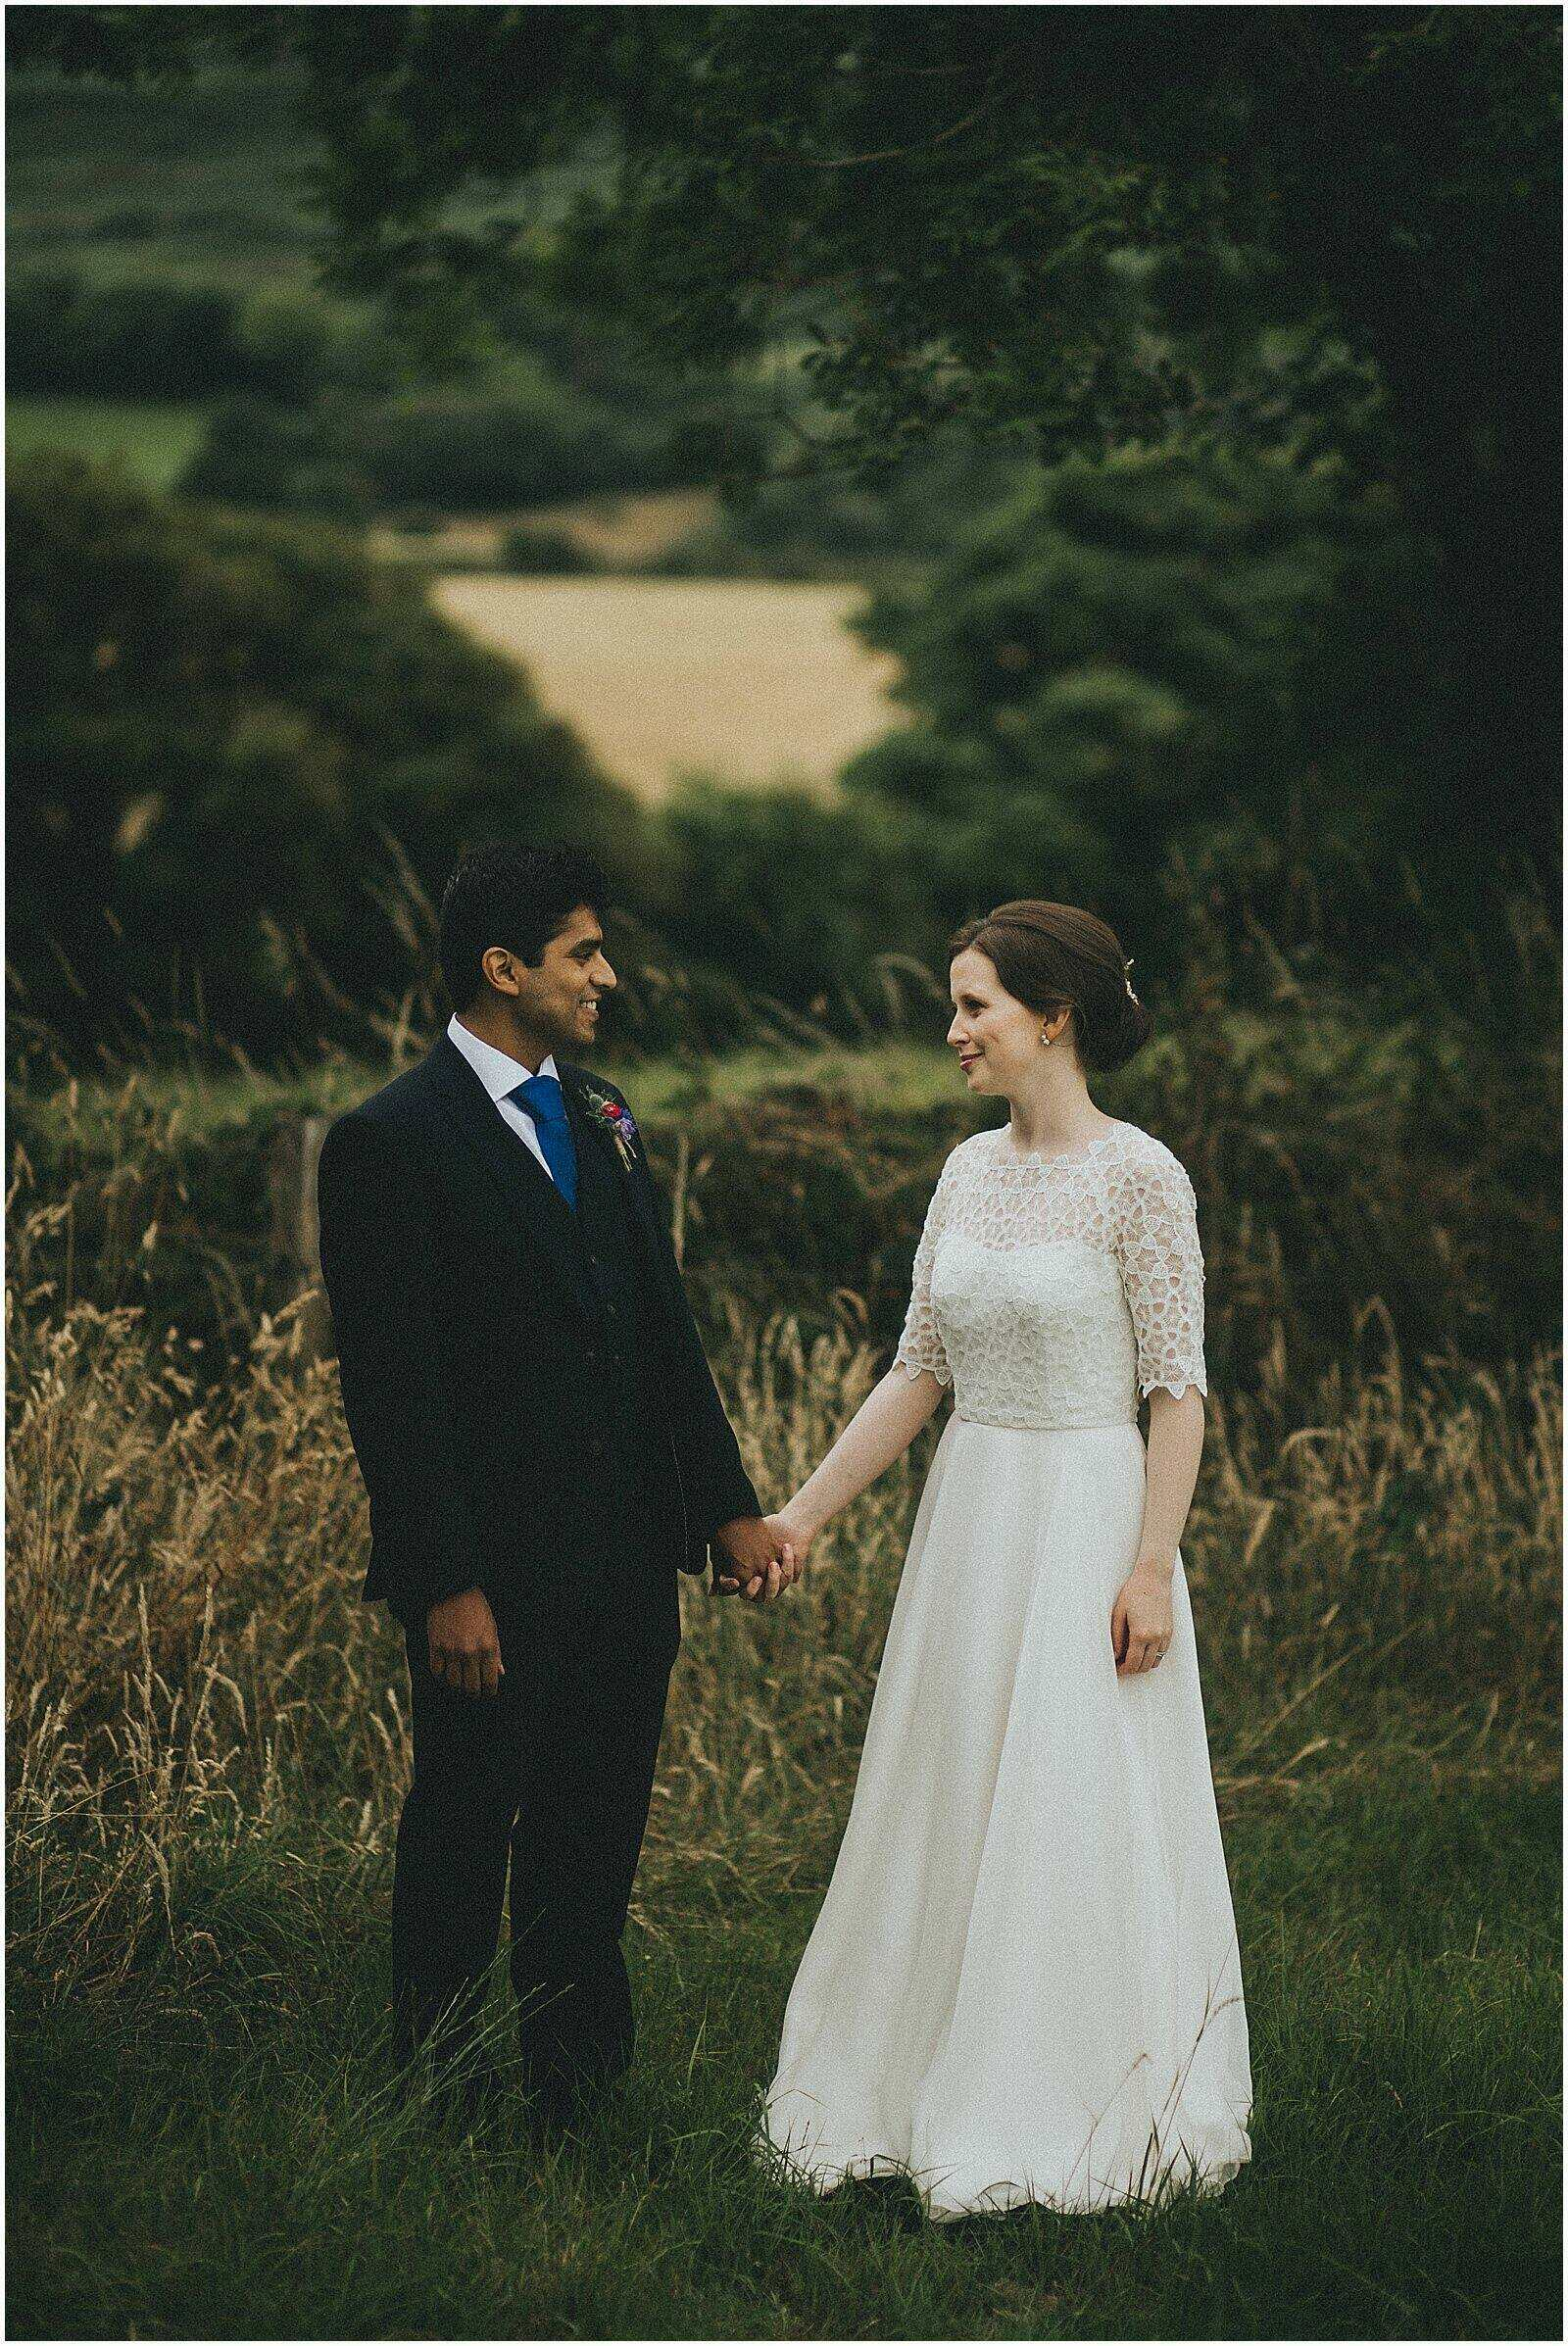 BLAIRSCOVE HOUSE – NÓRÍDE AND RAVI 77